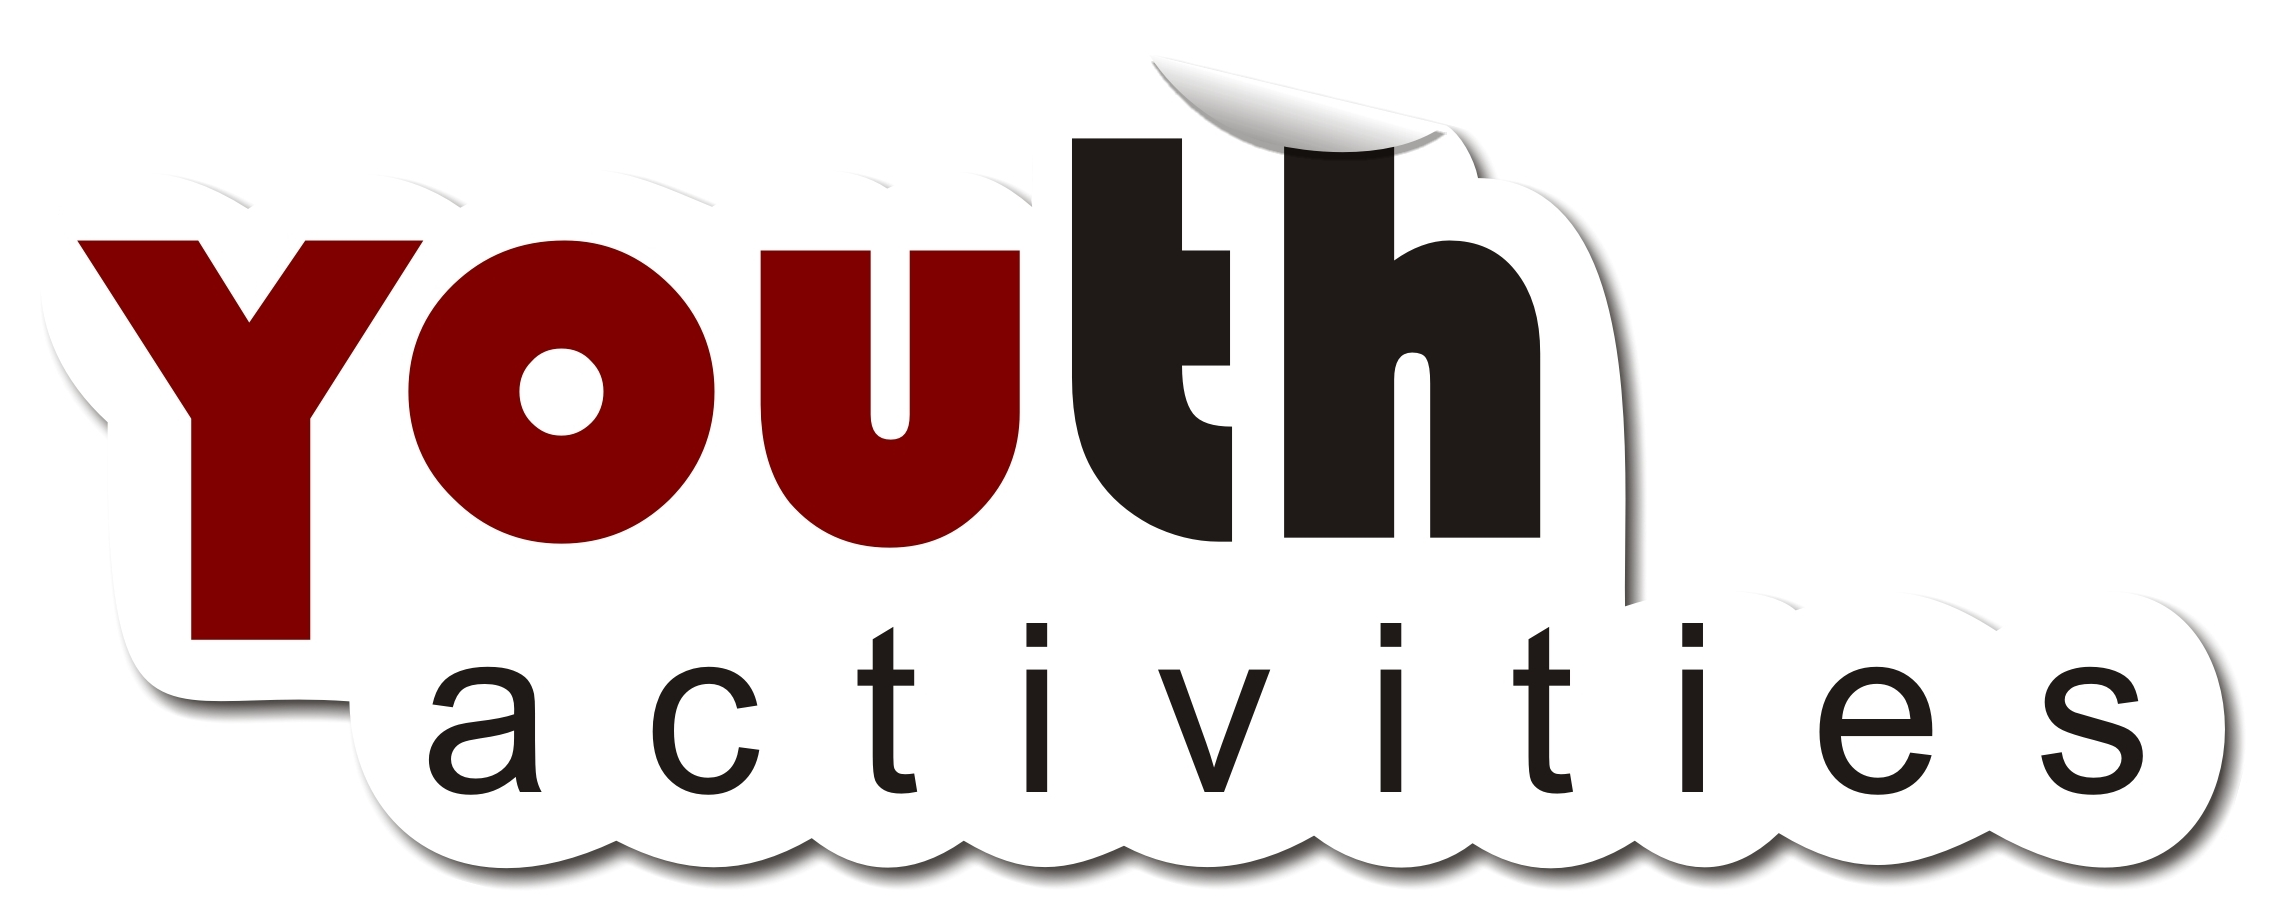 Youth Activities Free Images At Clker